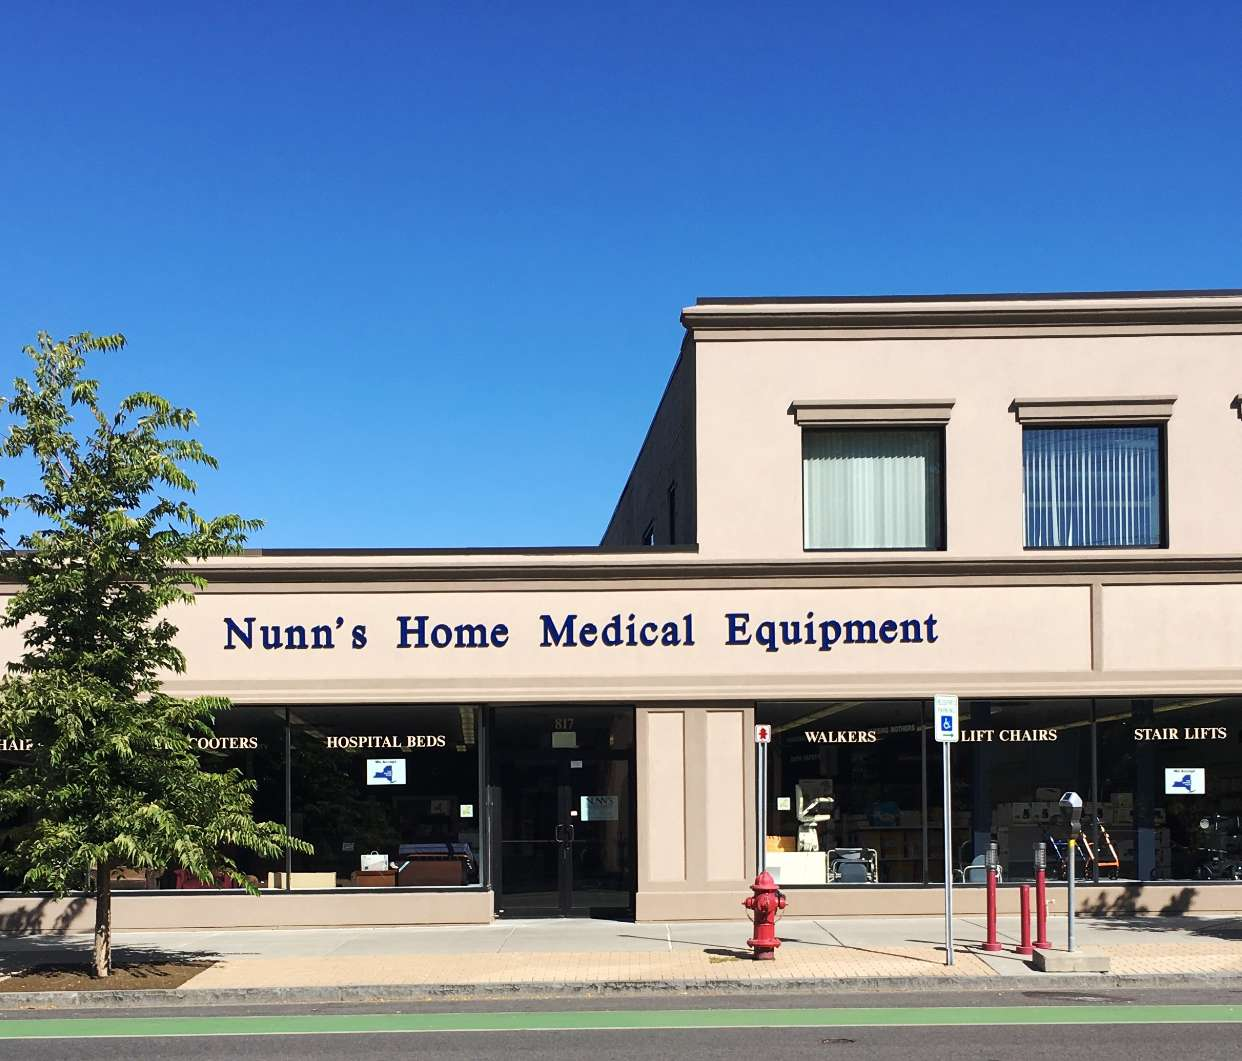 Nunn's Home Medical Equipment